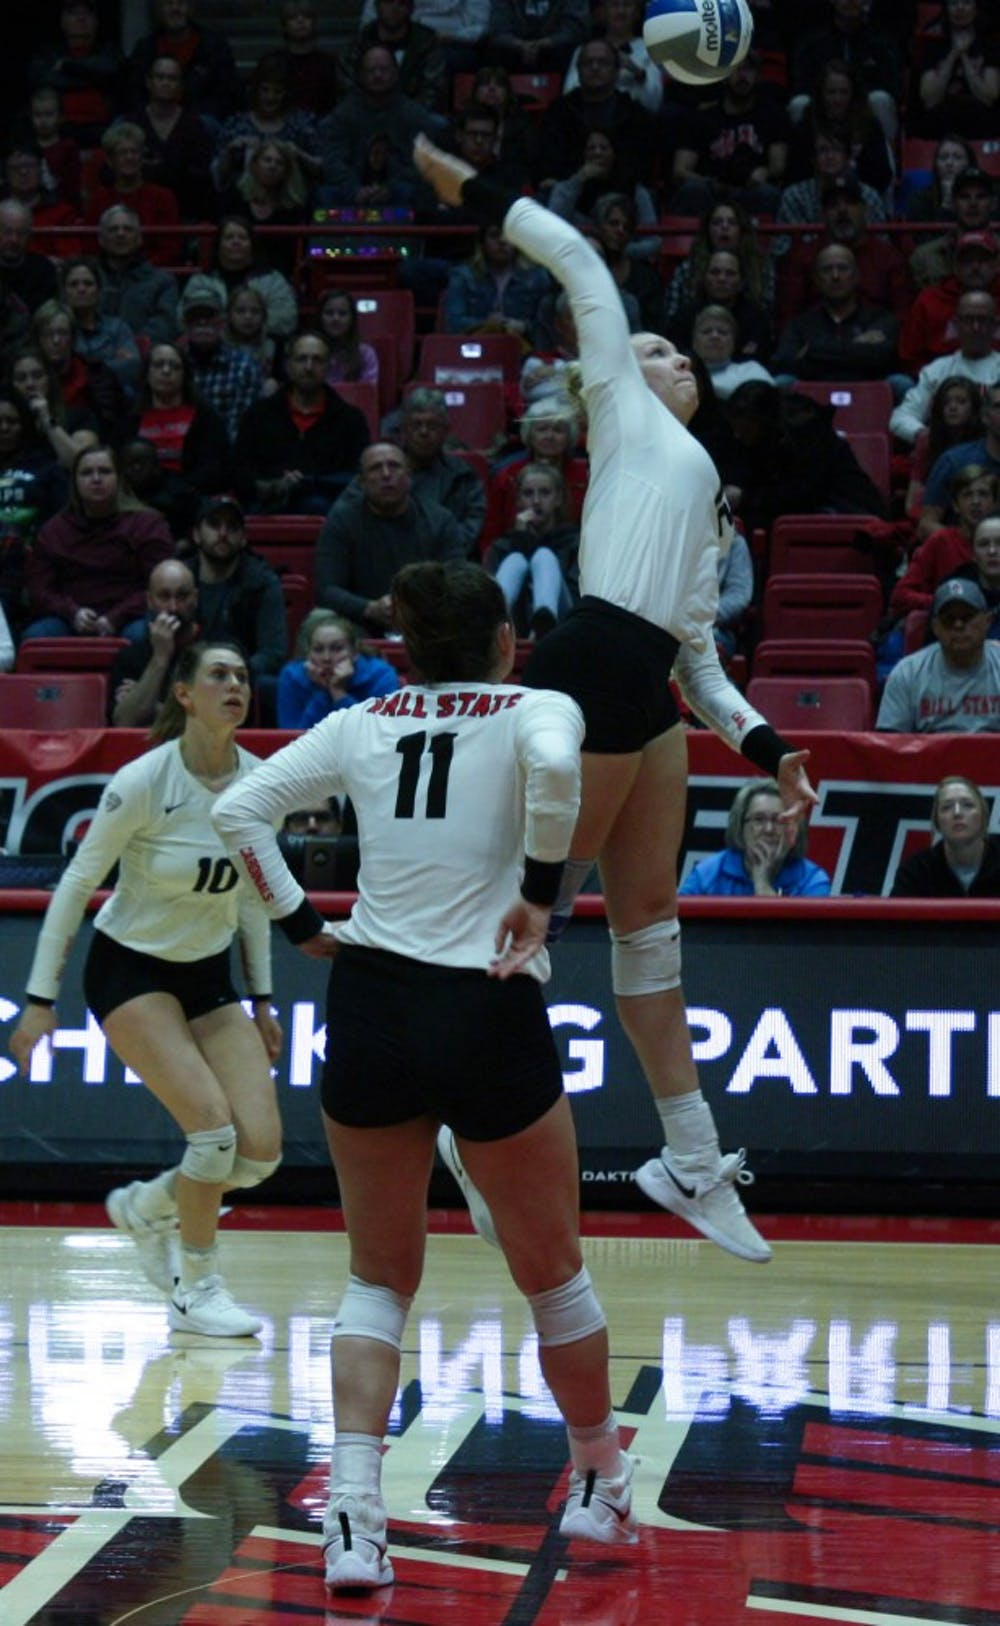 <p>Junior Sydnee VanBeek spikes the ball at the Ball State Women's Volleyball match against Akron Nov.10, 2018, at John E. Worthen Arena. VanBeek scored the winning point of the fifth set to give the Cardinals the match win. <strong>Tailiyah Johnson,DN</strong></p>